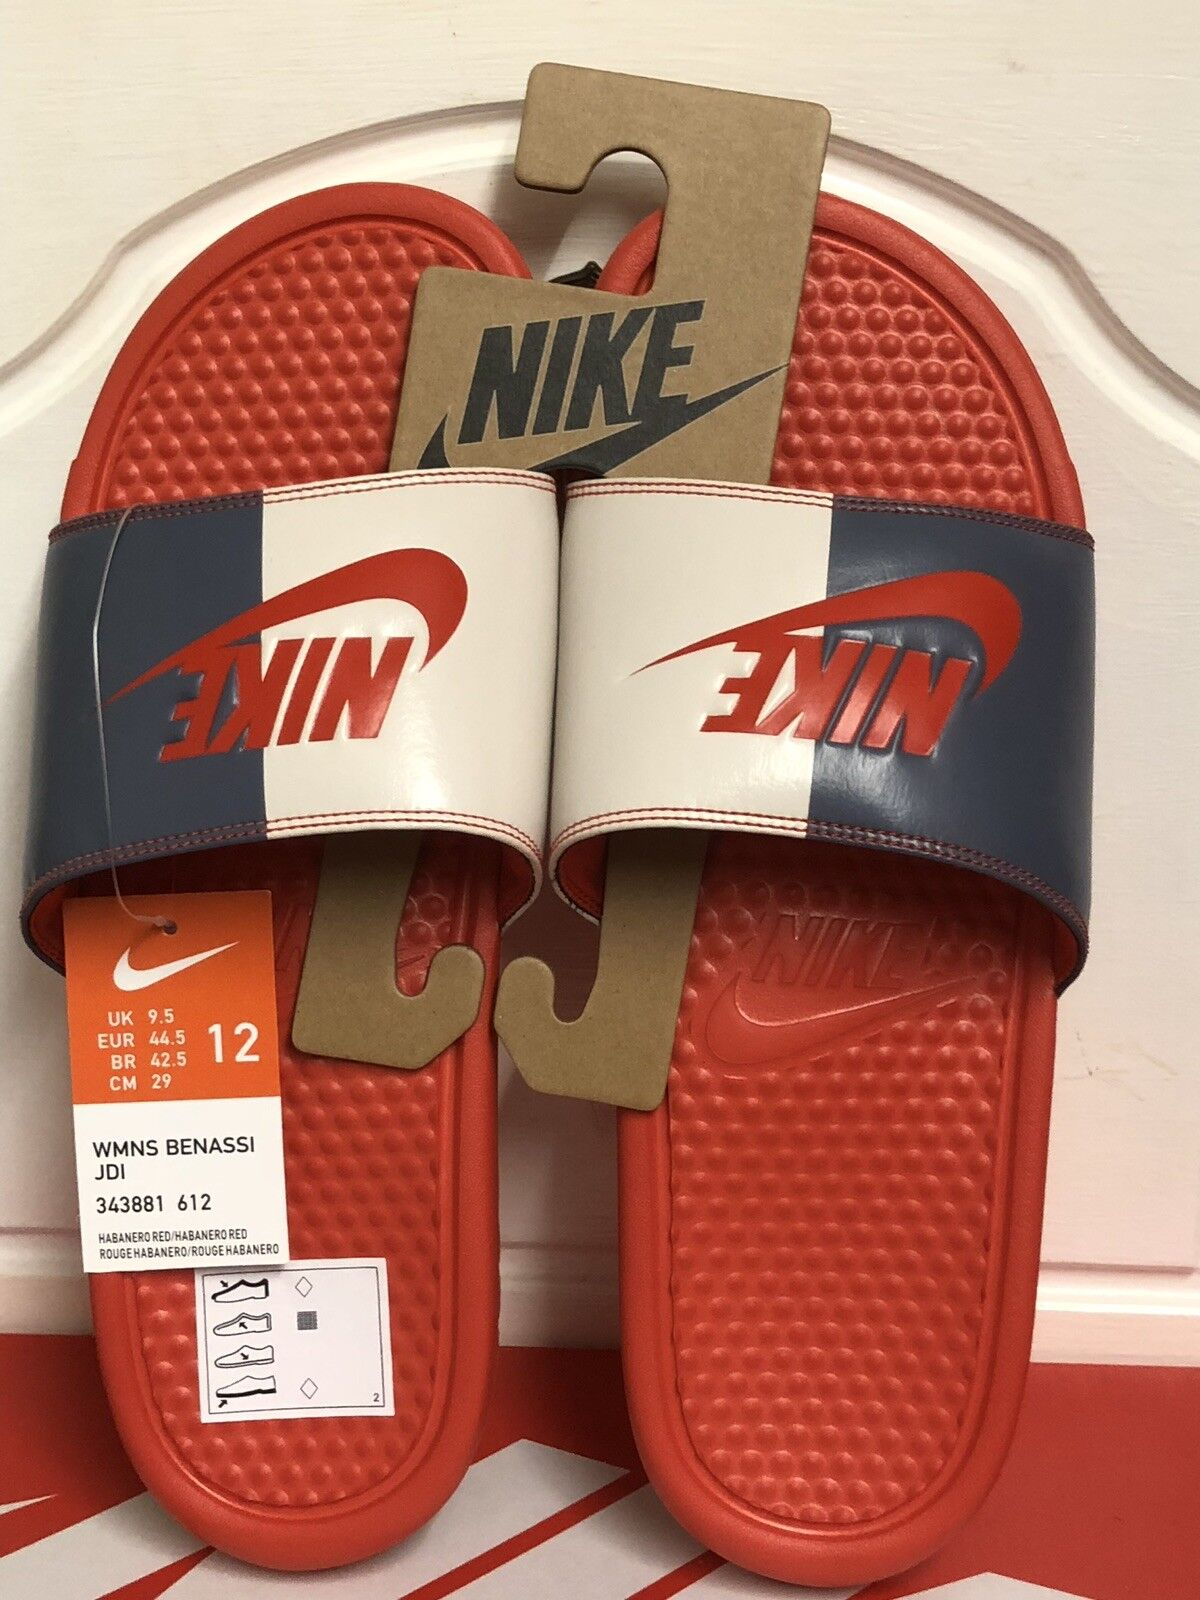 NIKE BENASSI JDI SLIDES SLIP ON FLIP FLOPS UK 9,5 EUR 44,5 US 12